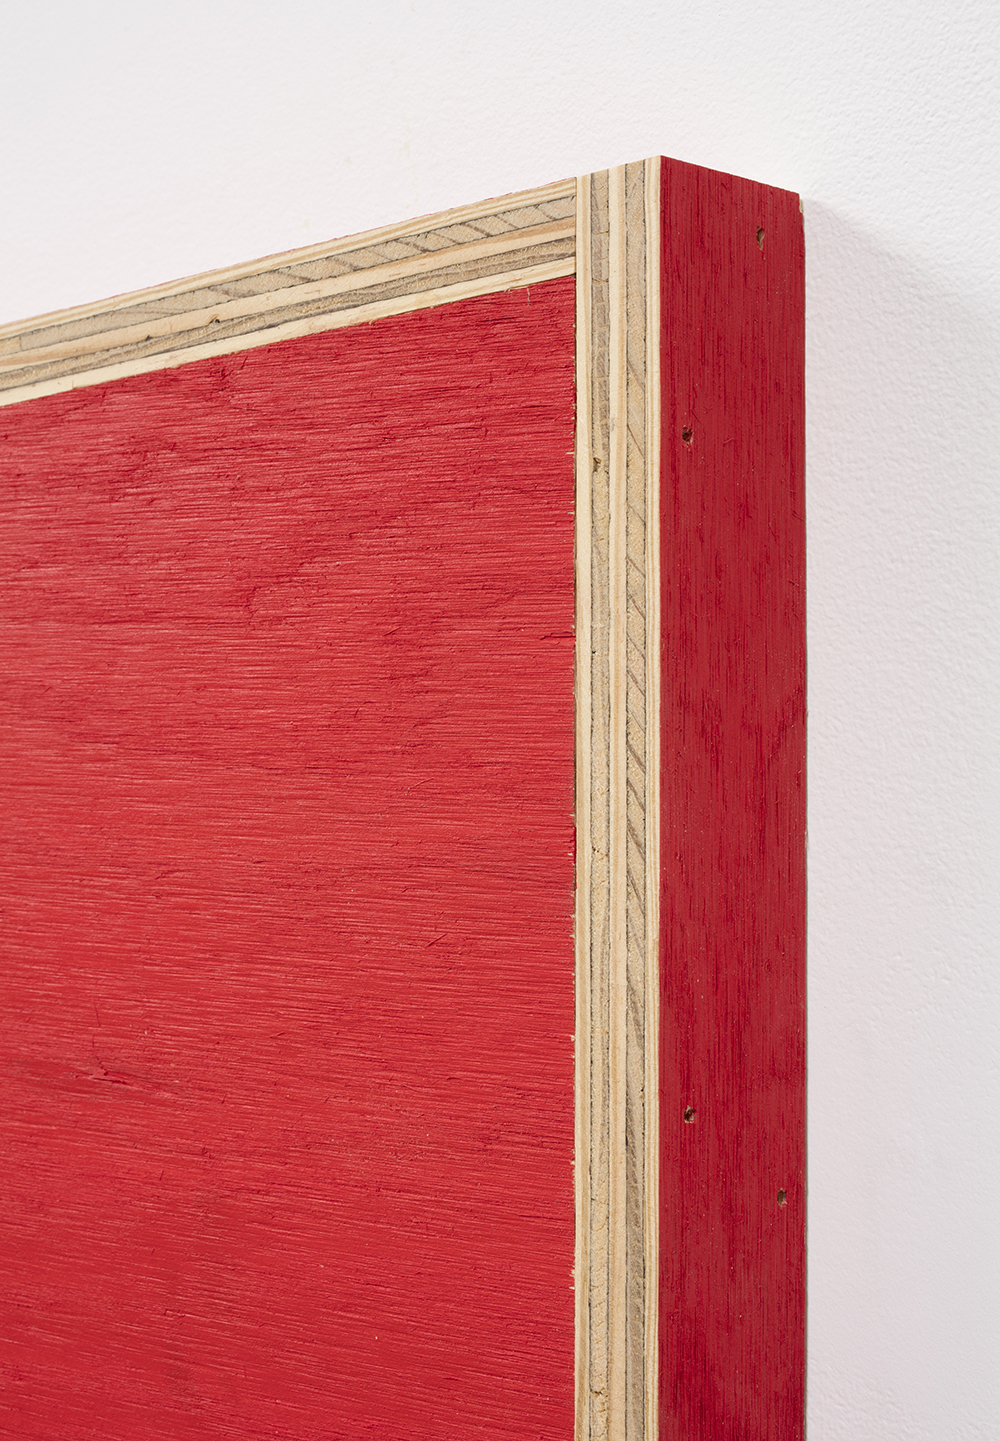 G.T. Pellizzi. <em>Transitional Geometry in Red</em>, 2017. Eggshell acrylic on plywood, 25 3/4 x 30 1/4 x 5 inches. Detail